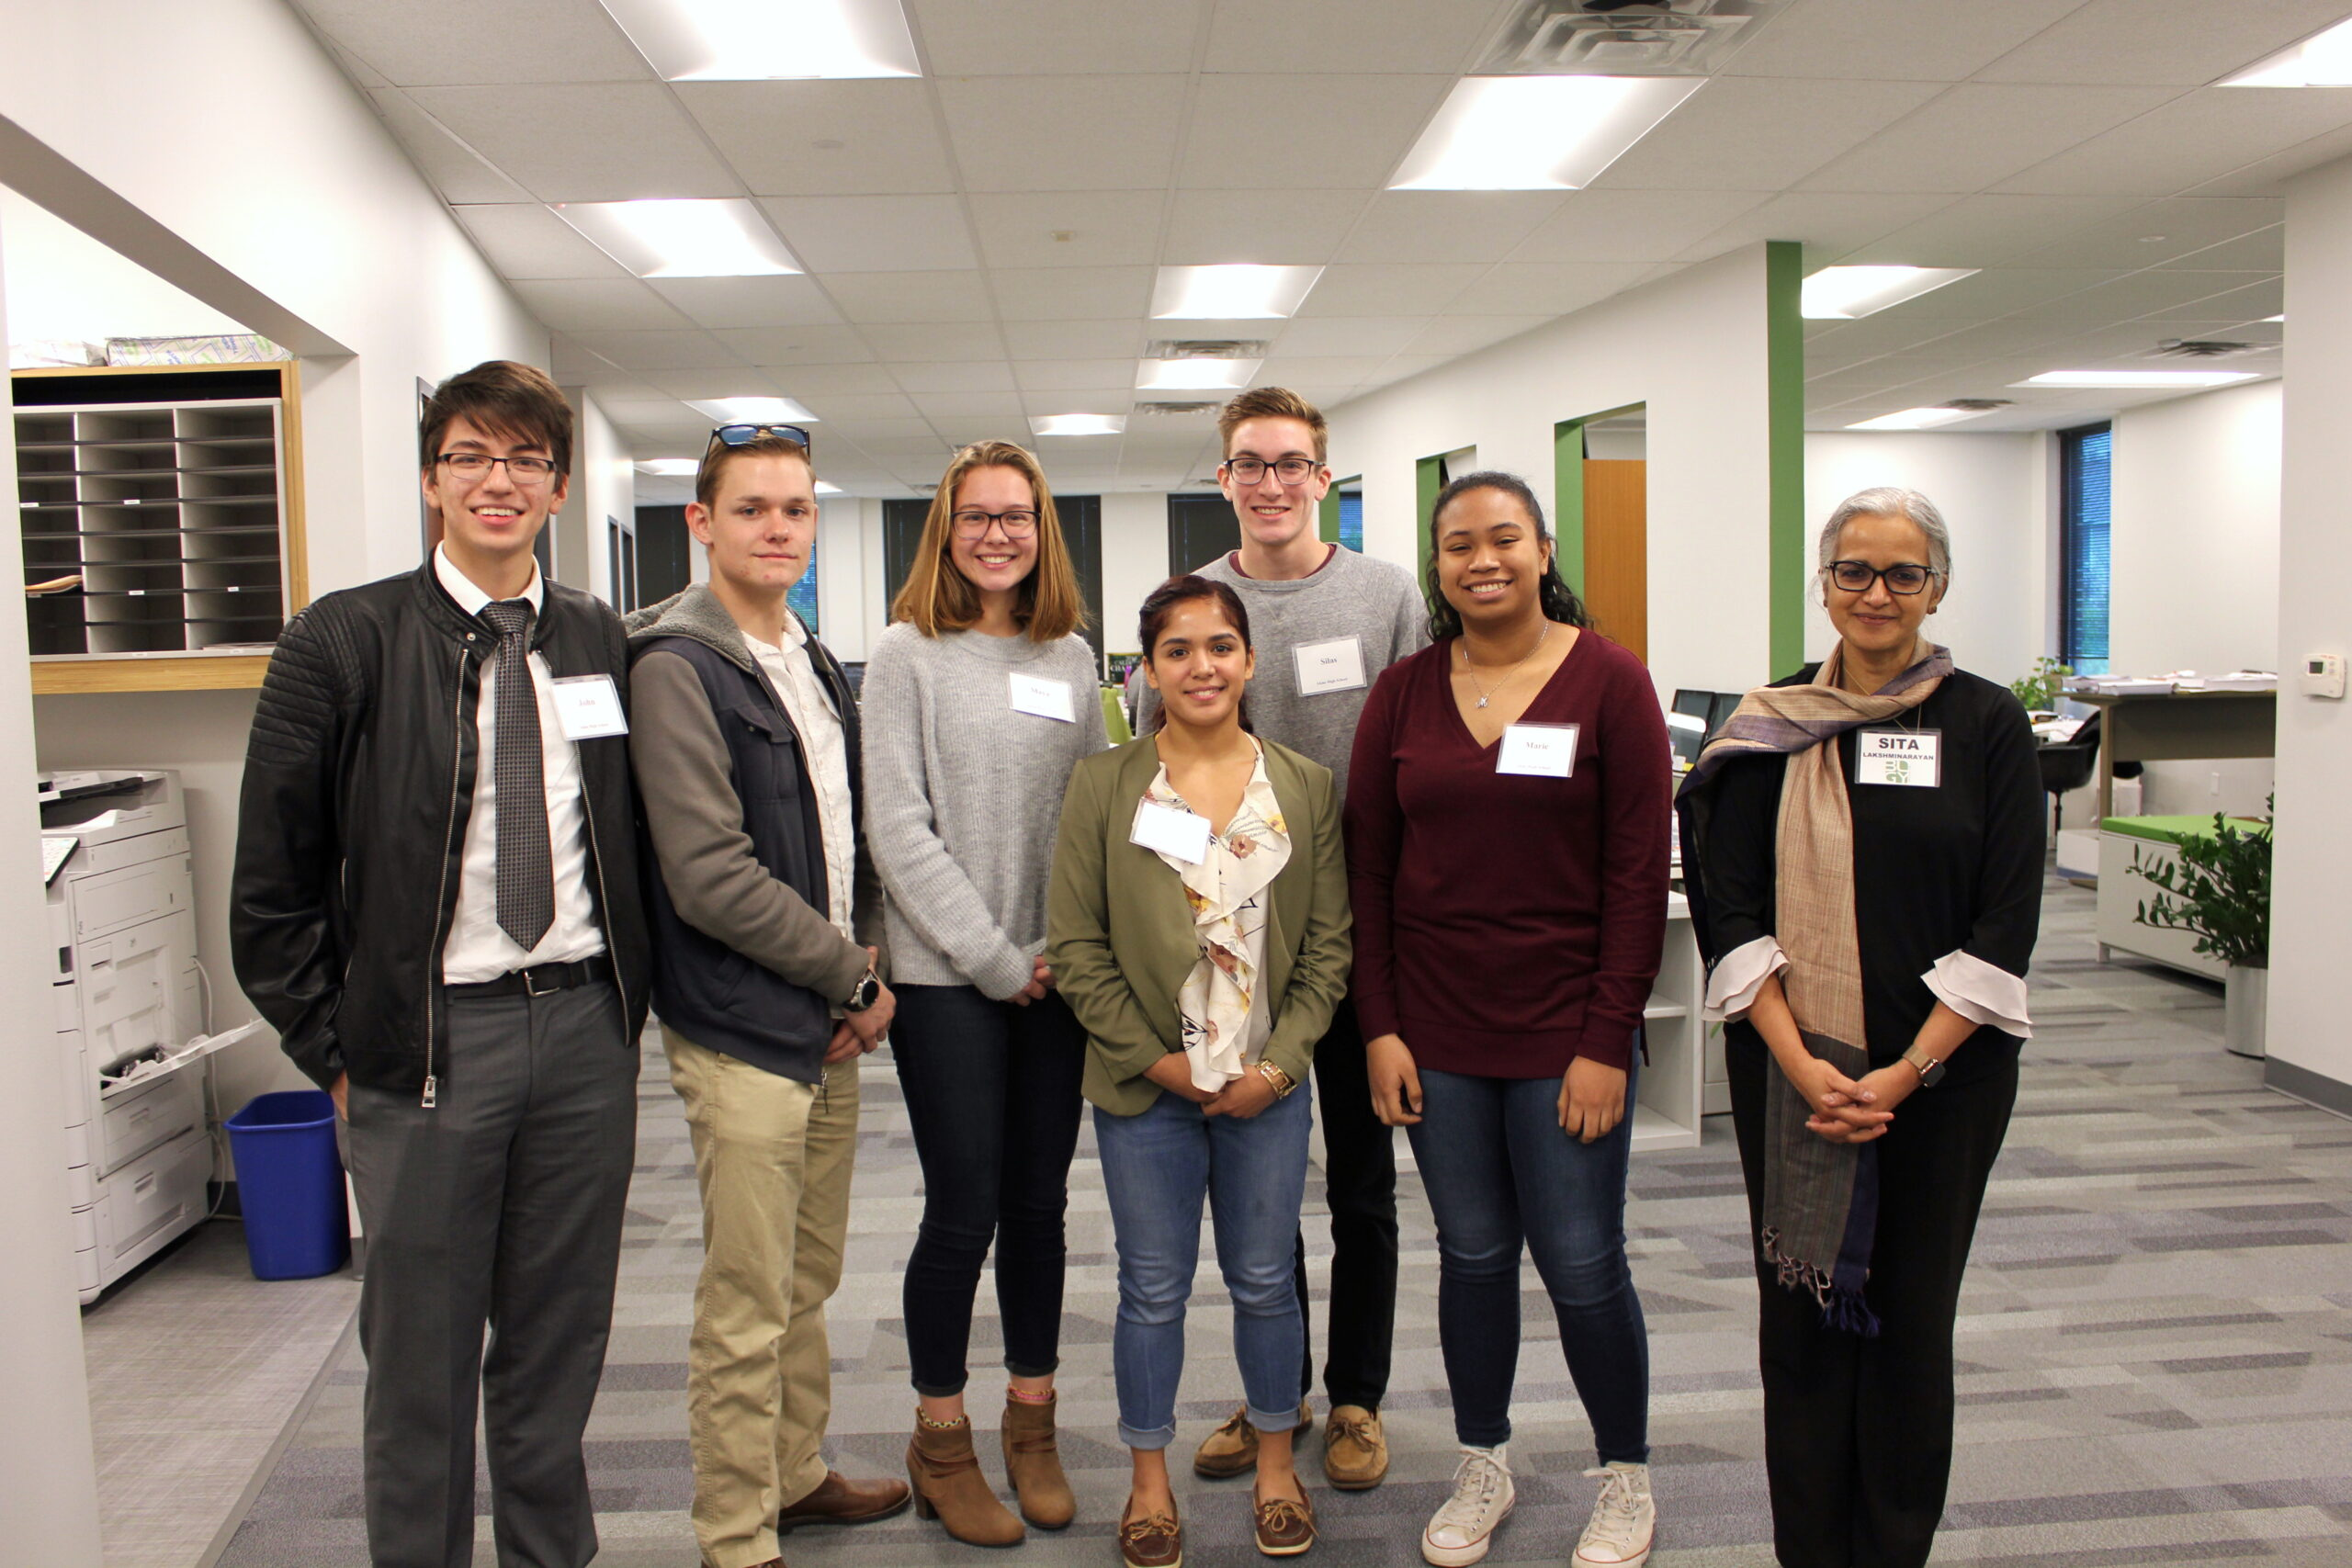 Green Building Internship: Turning Passions into Careers